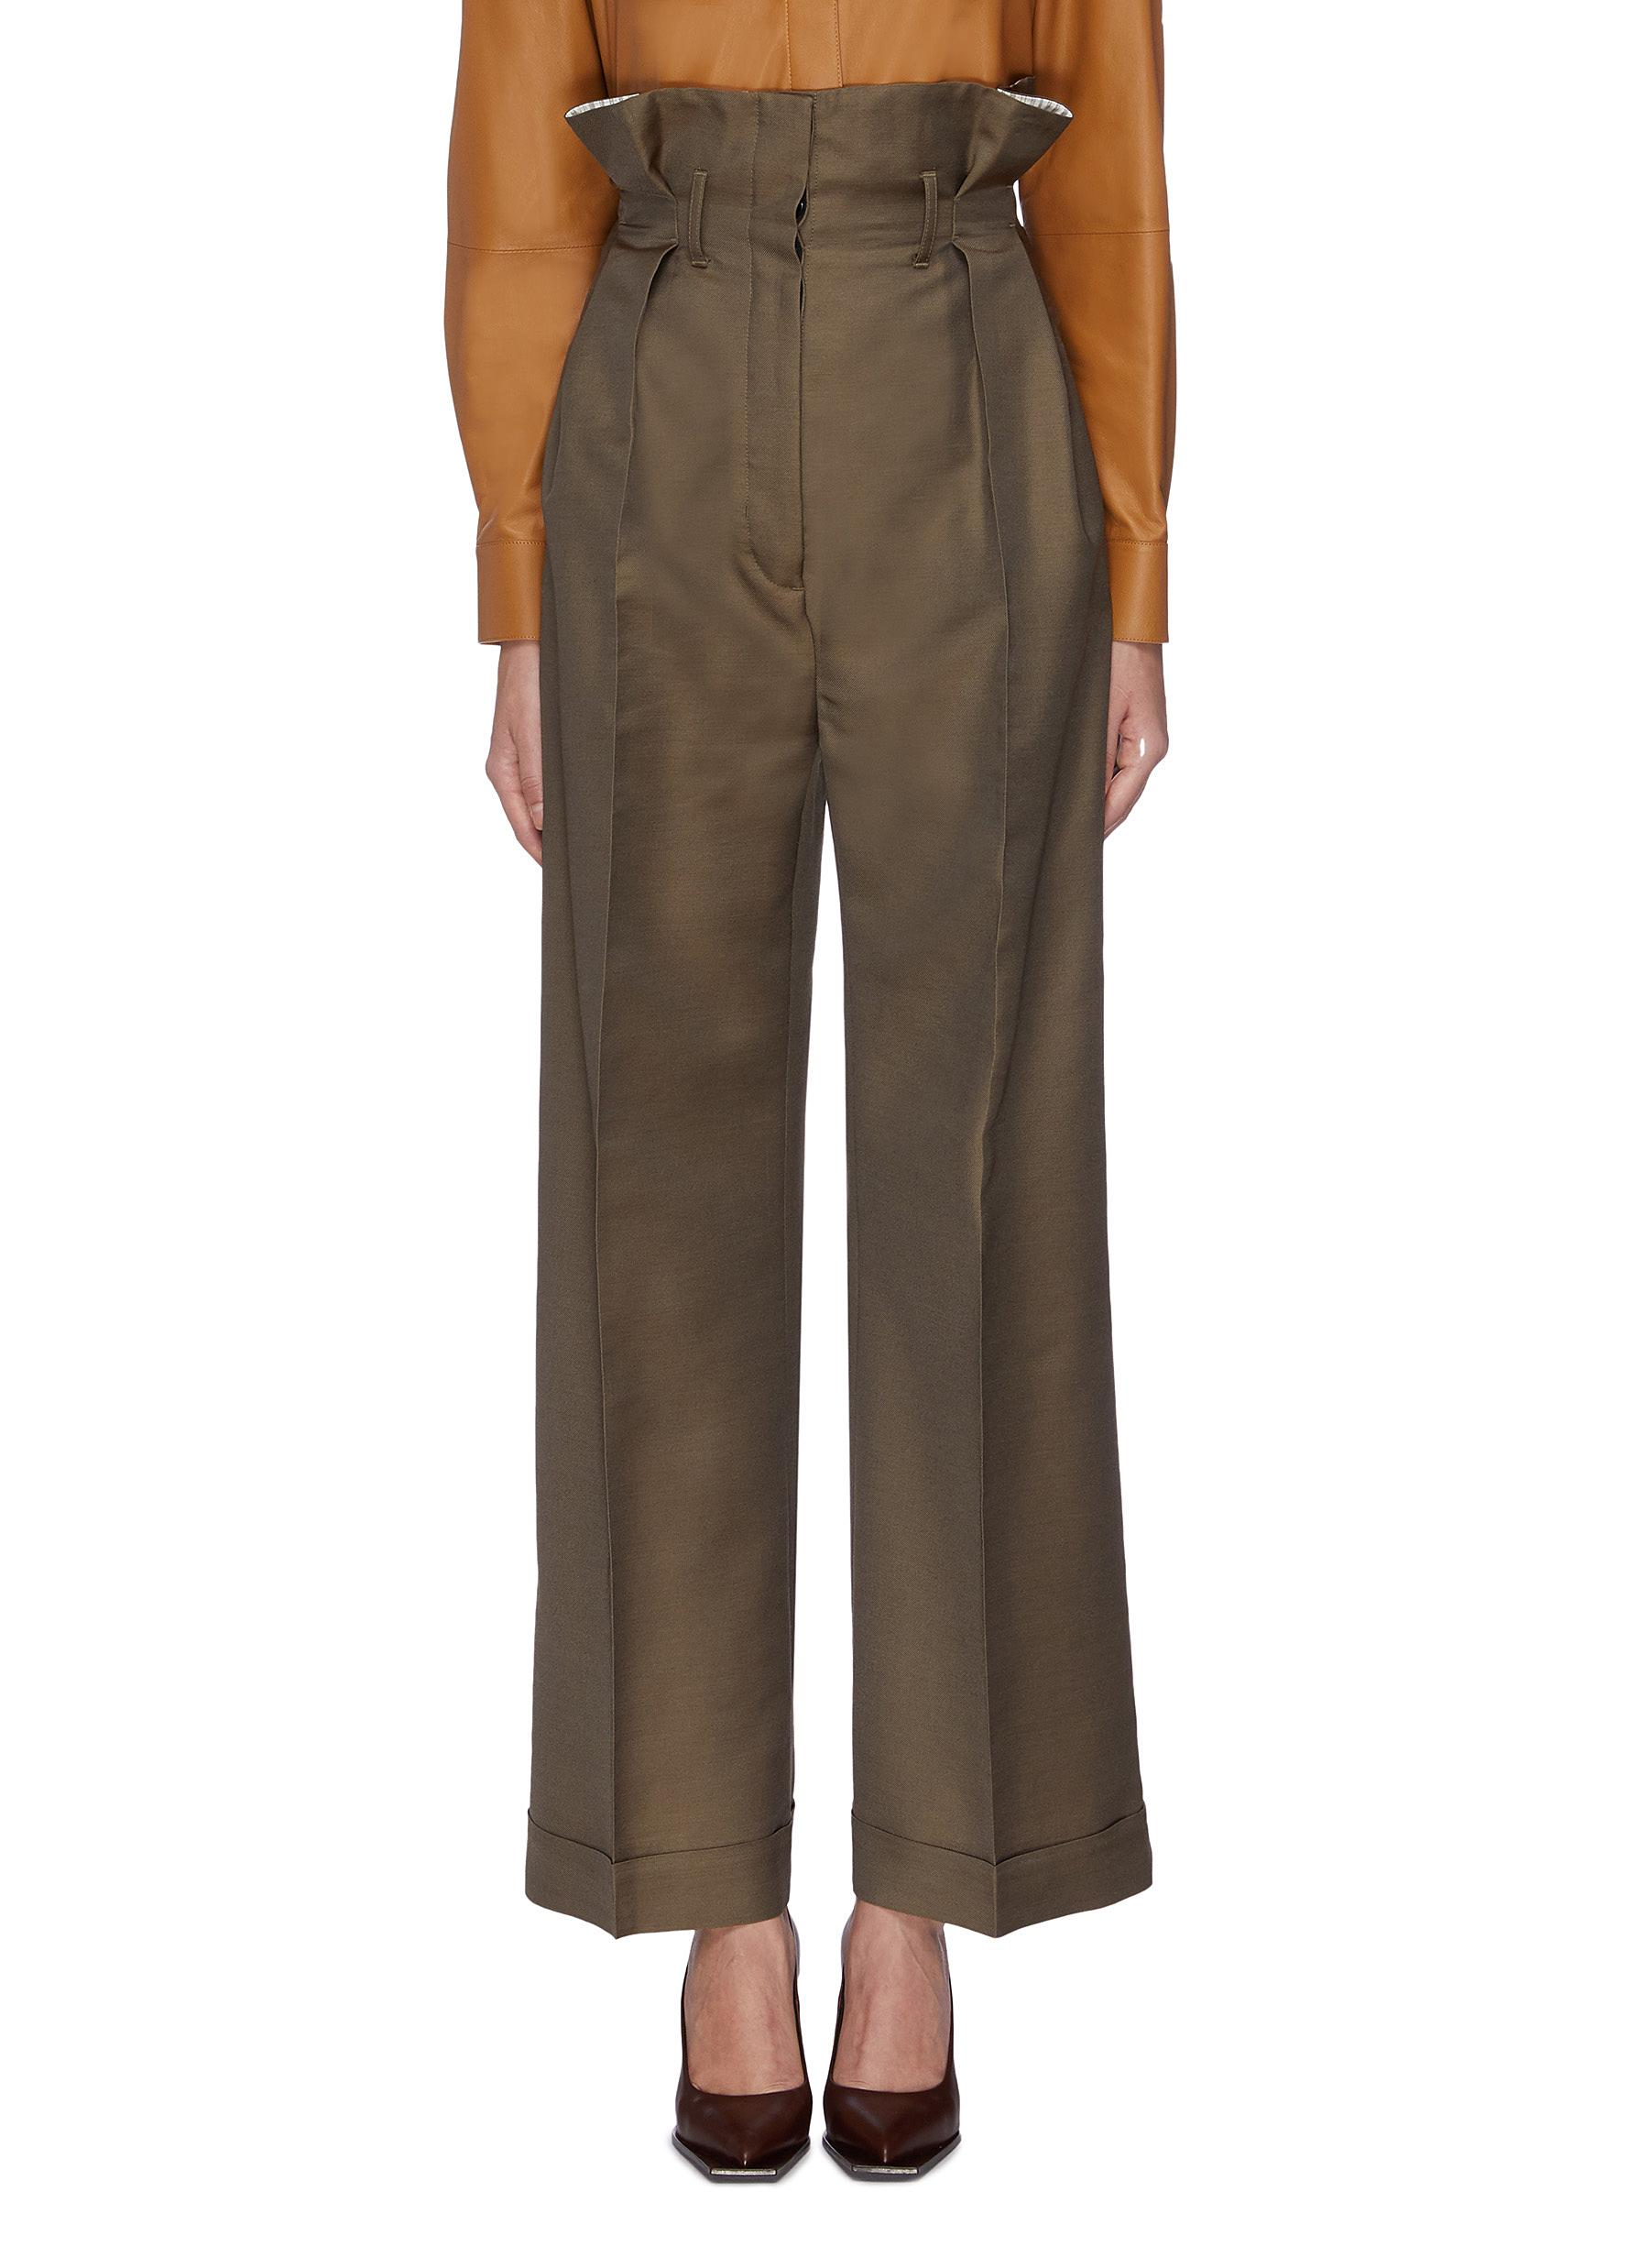 Pleated paperbag pants by Acne Studios